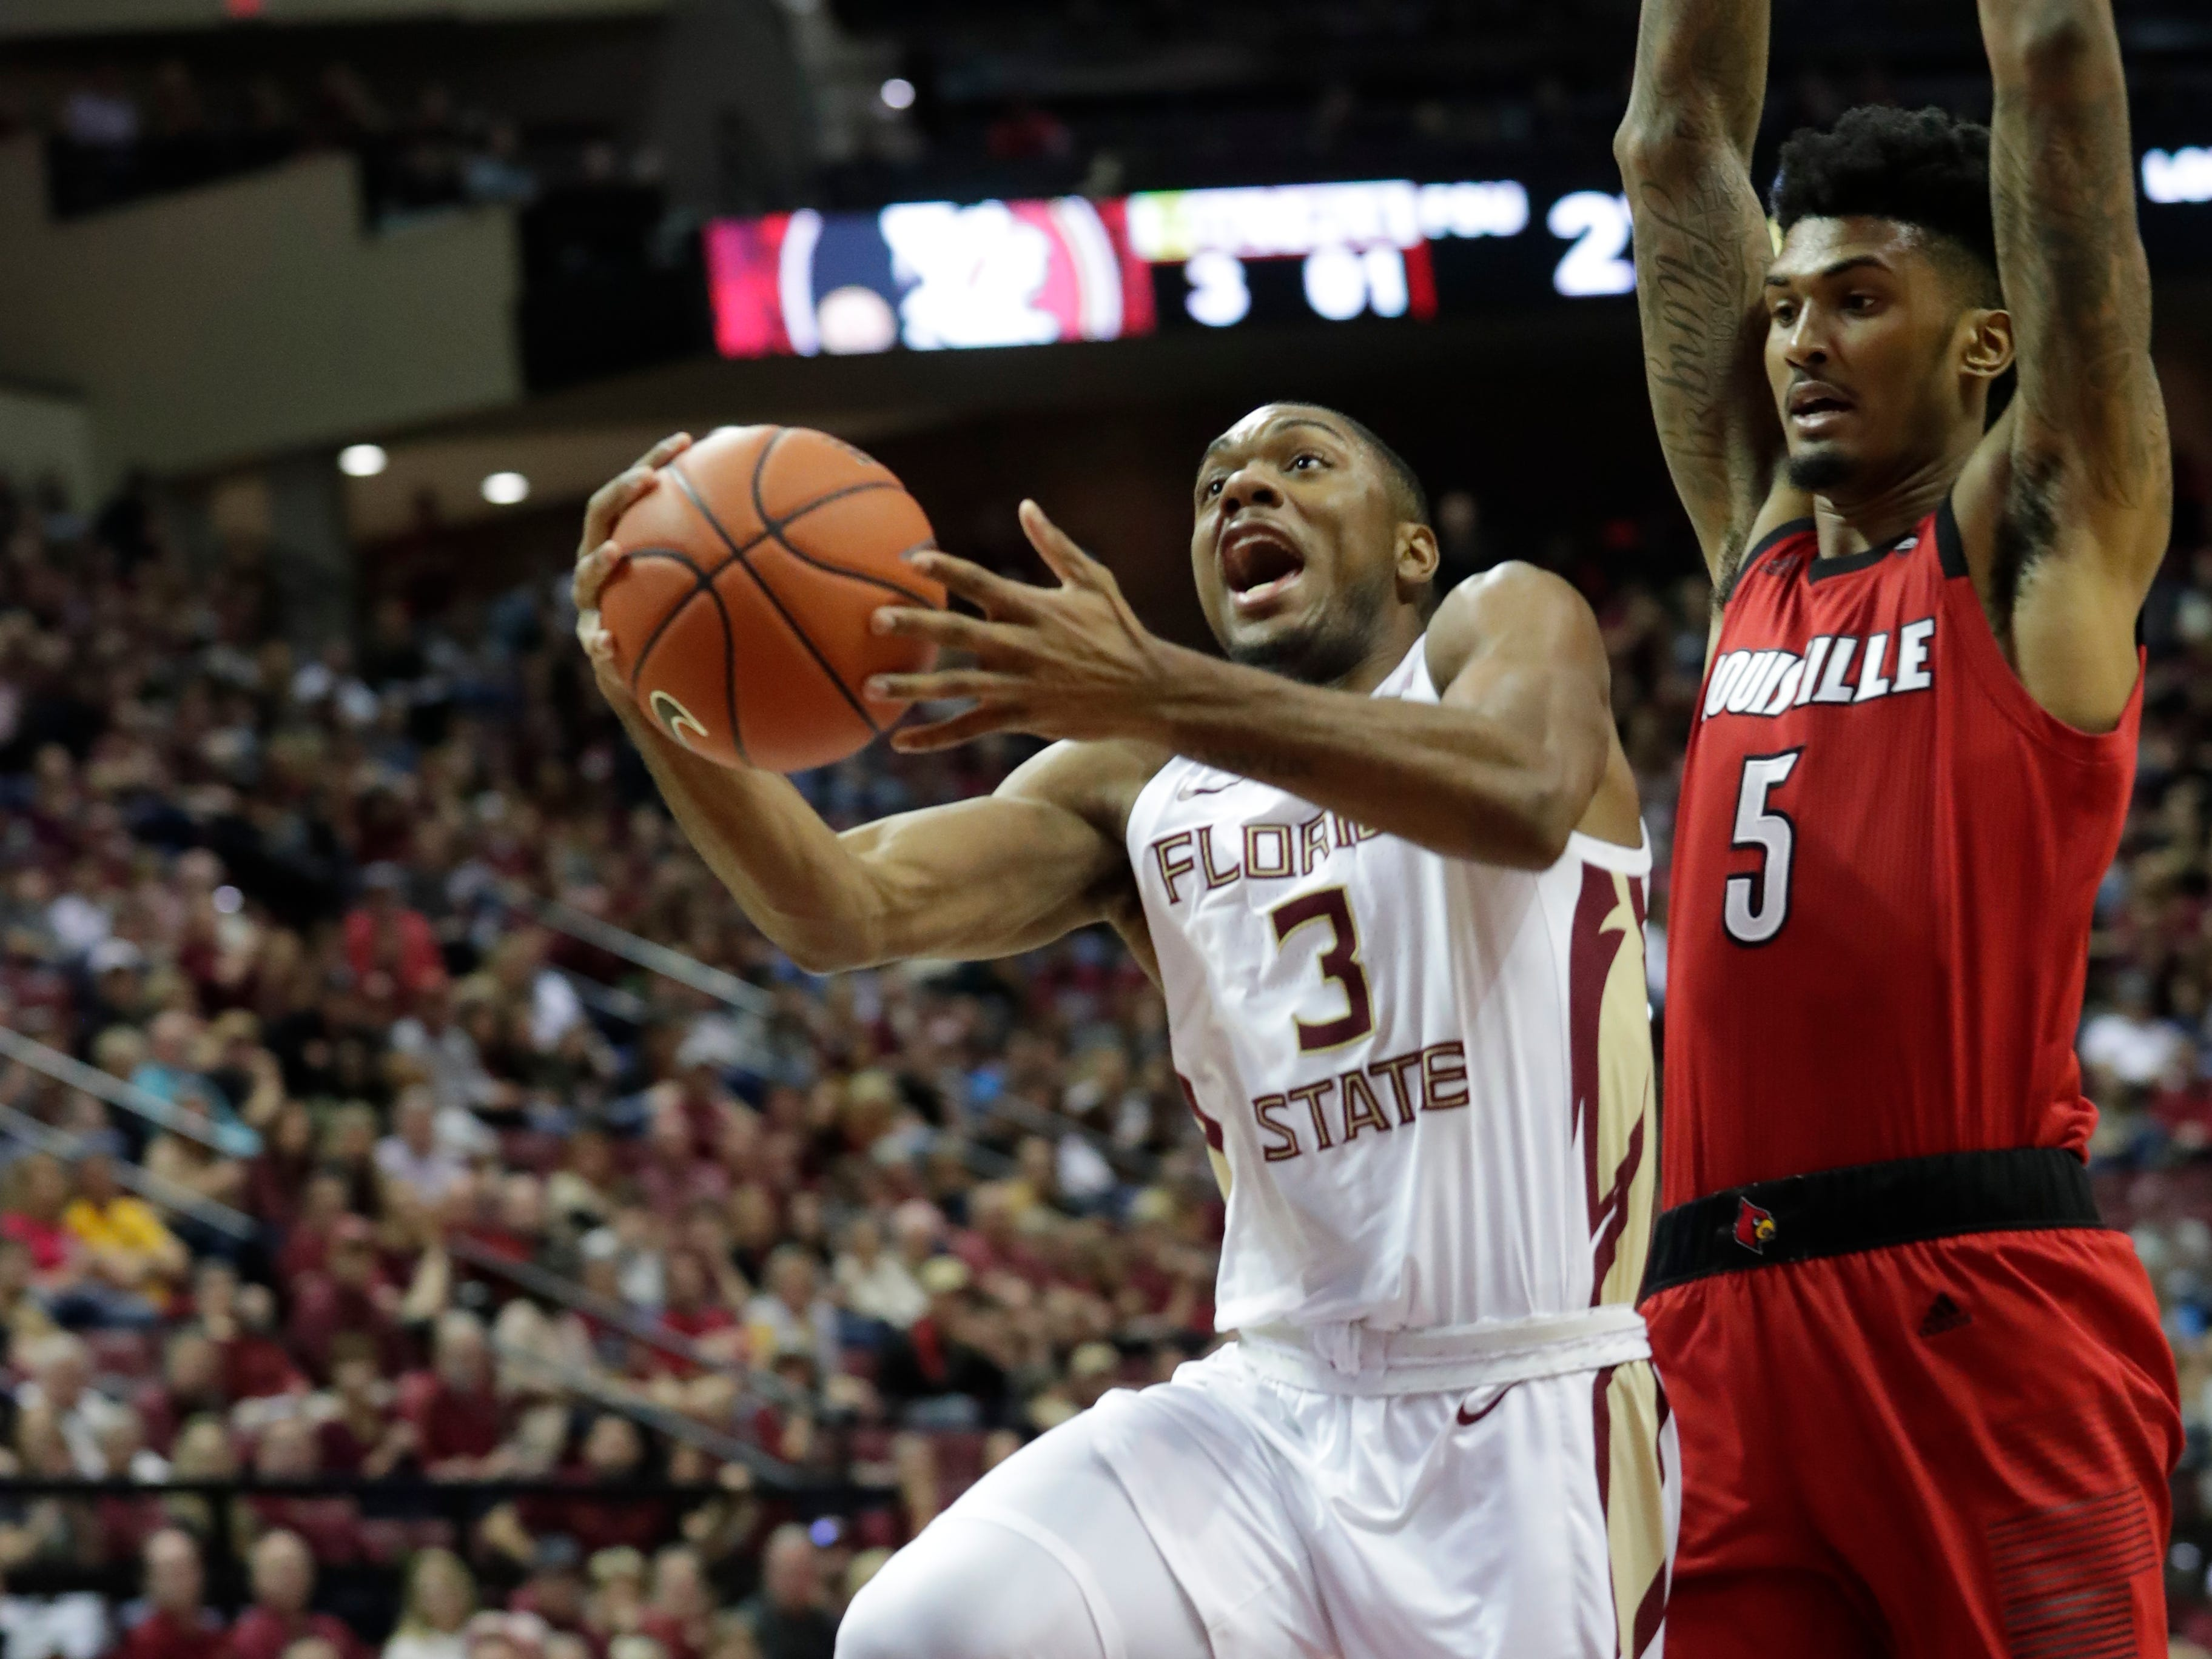 Florida State Seminoles guard Trent Forrest (3) drives in a layup past Louisville Cardinals center Malik Williams (5) as the Florida State Seminoles host the Louisville Cardinals at the Tucker Civic Center, Saturday Feb. 9, 2019.